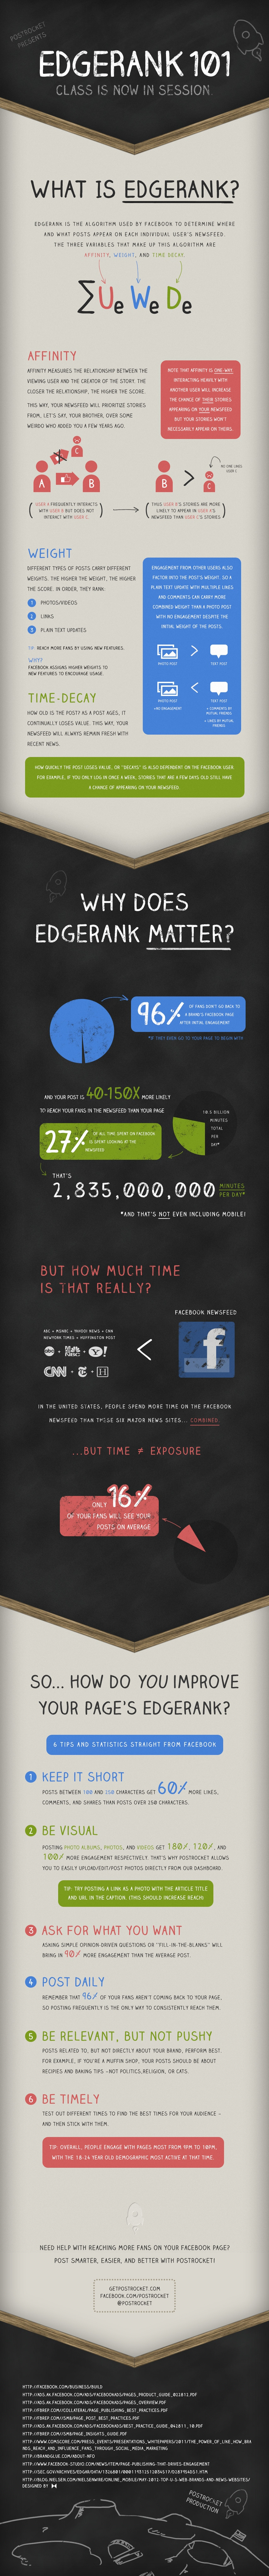 edgerank-facebook-newsfeed-algorithm-infographic